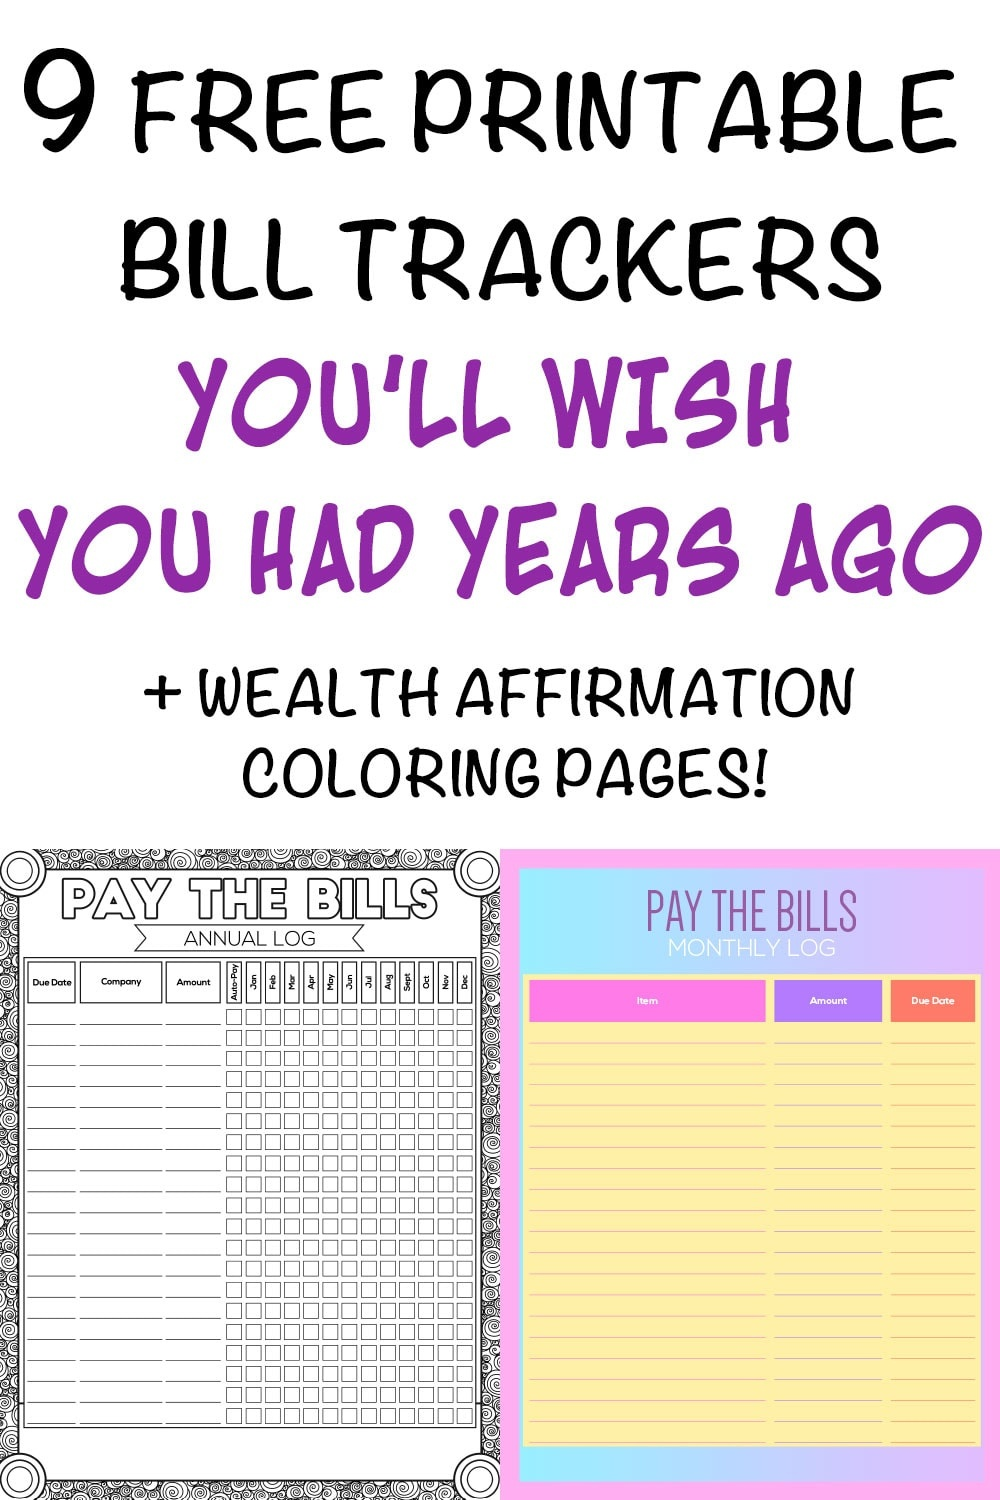 9 Printable Bill Payment Checklists And Bill Trackers - The Artisan Life - Free Printable Bill Tracker